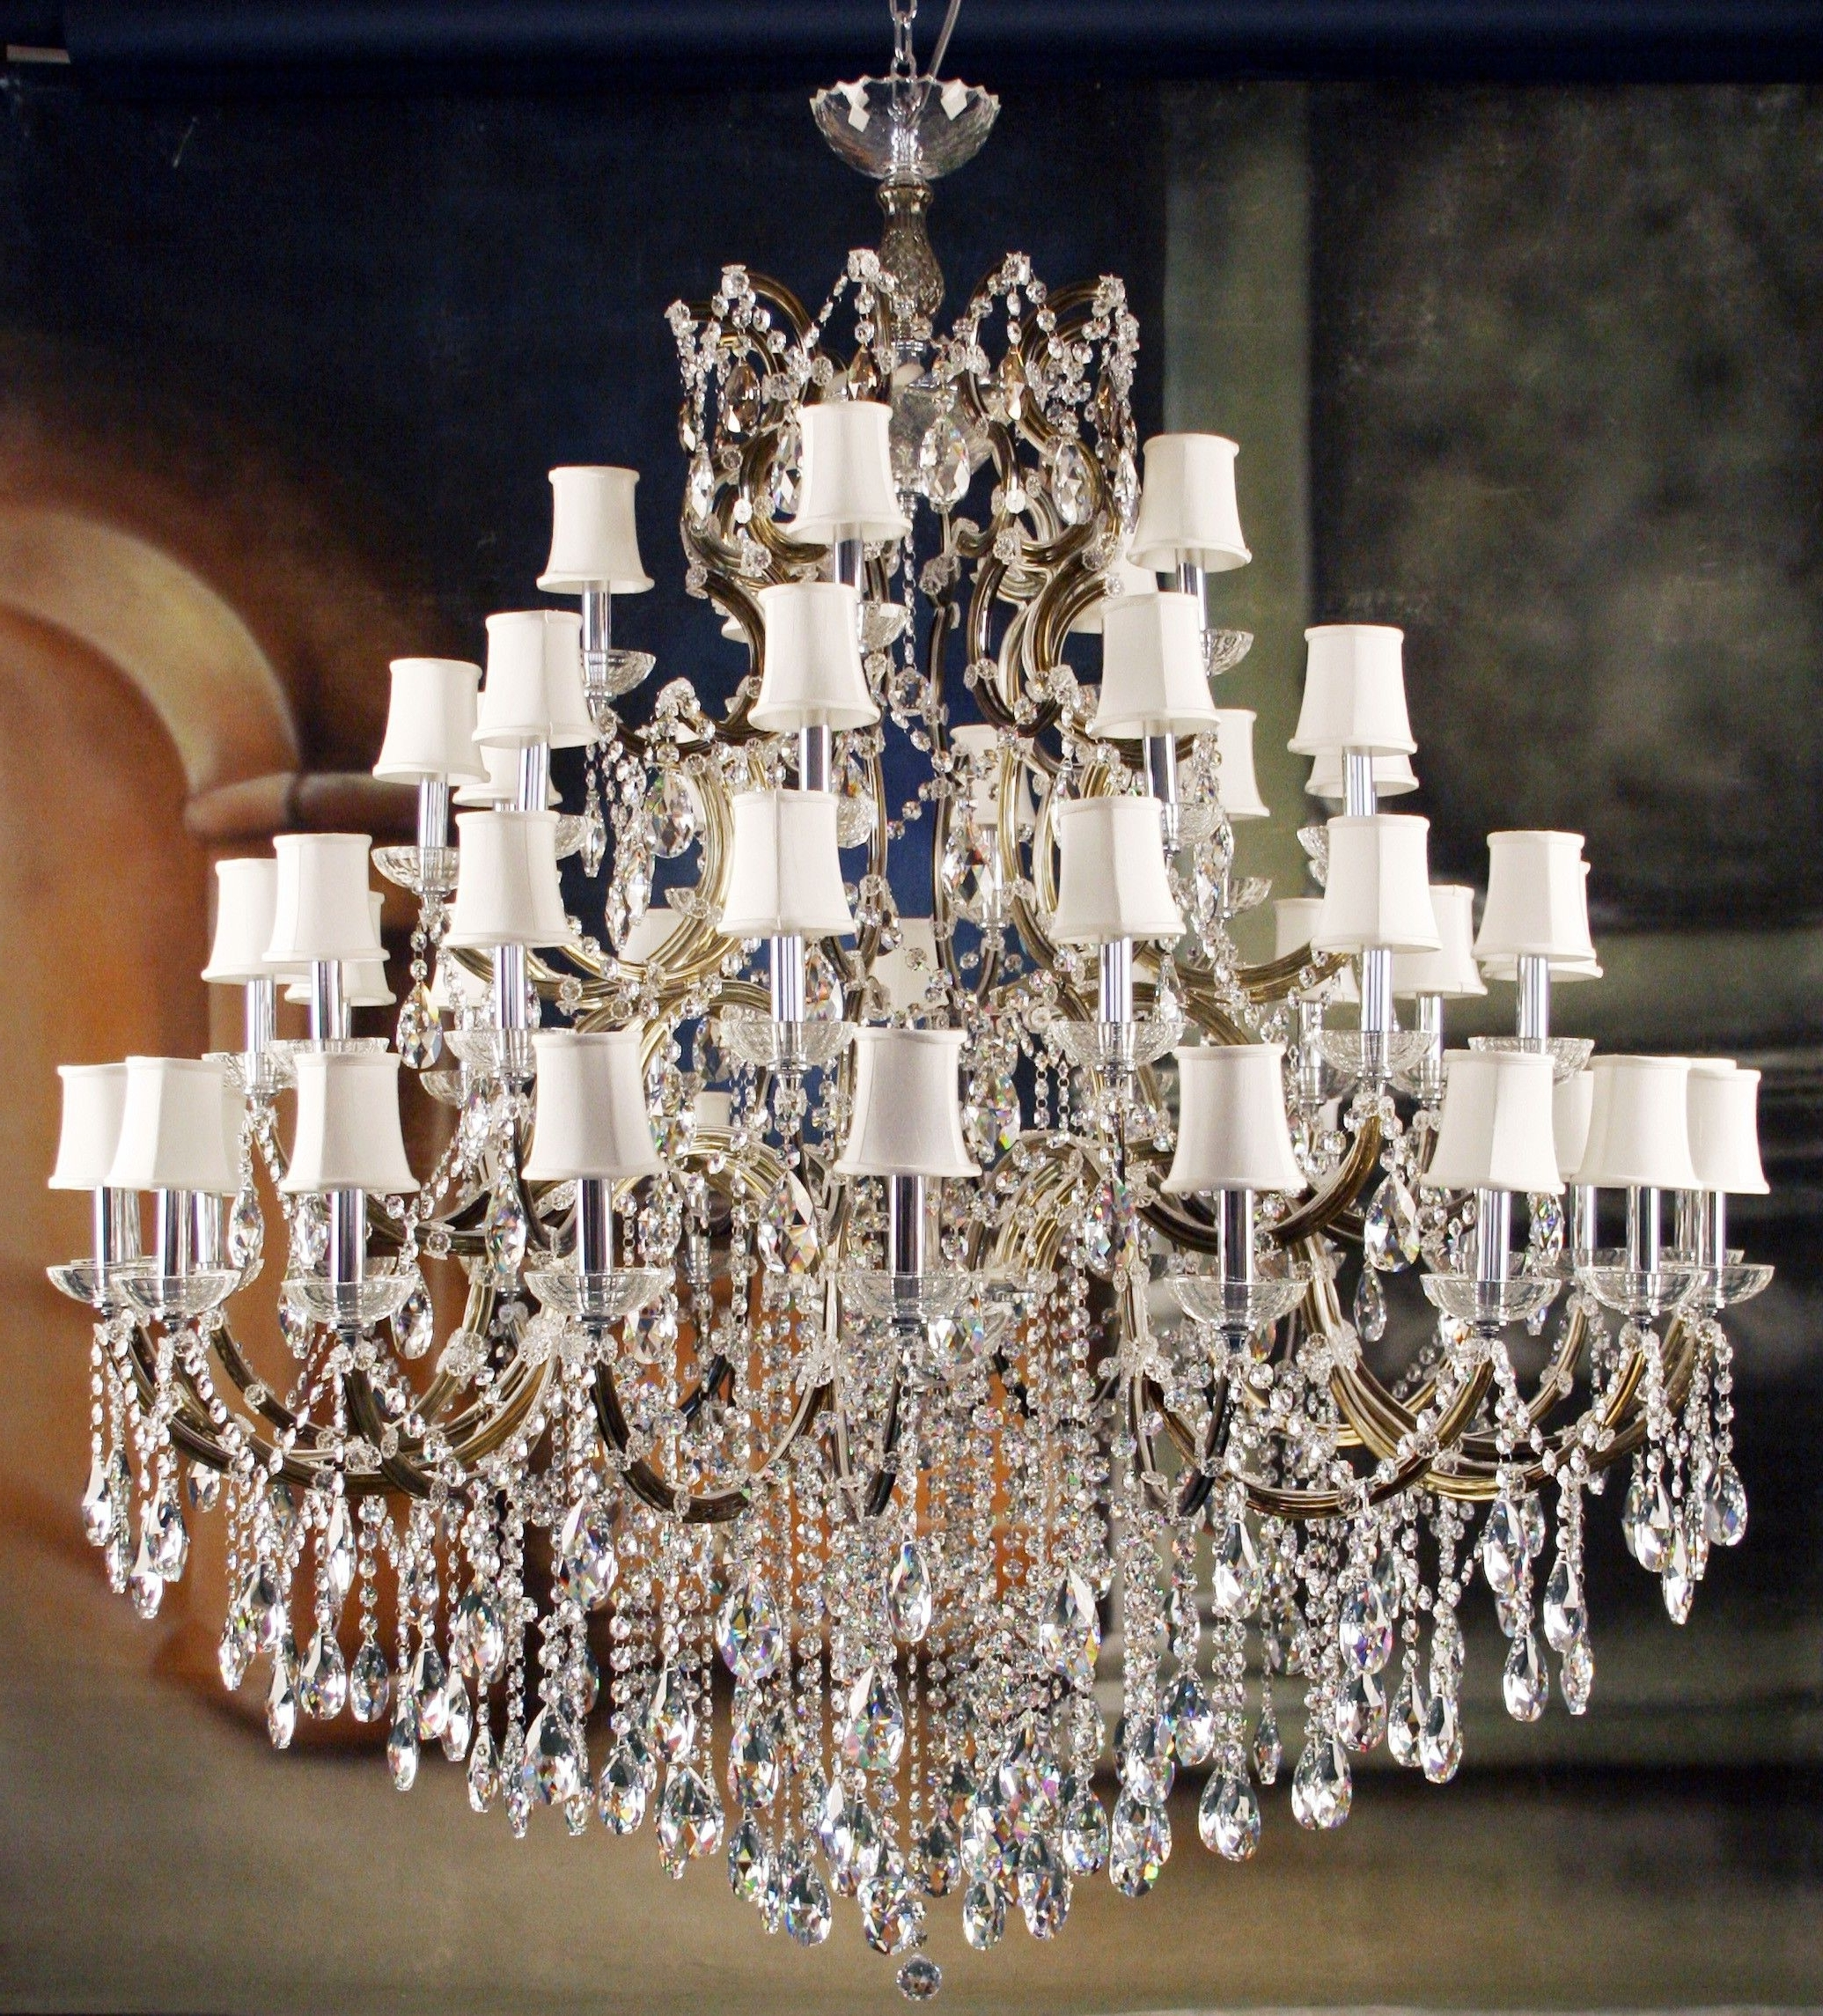 Impressive Unique Crystal Chandeliers Designer Lighting Unique Inside Popular Crystal Chandeliers With Shades (View 11 of 20)